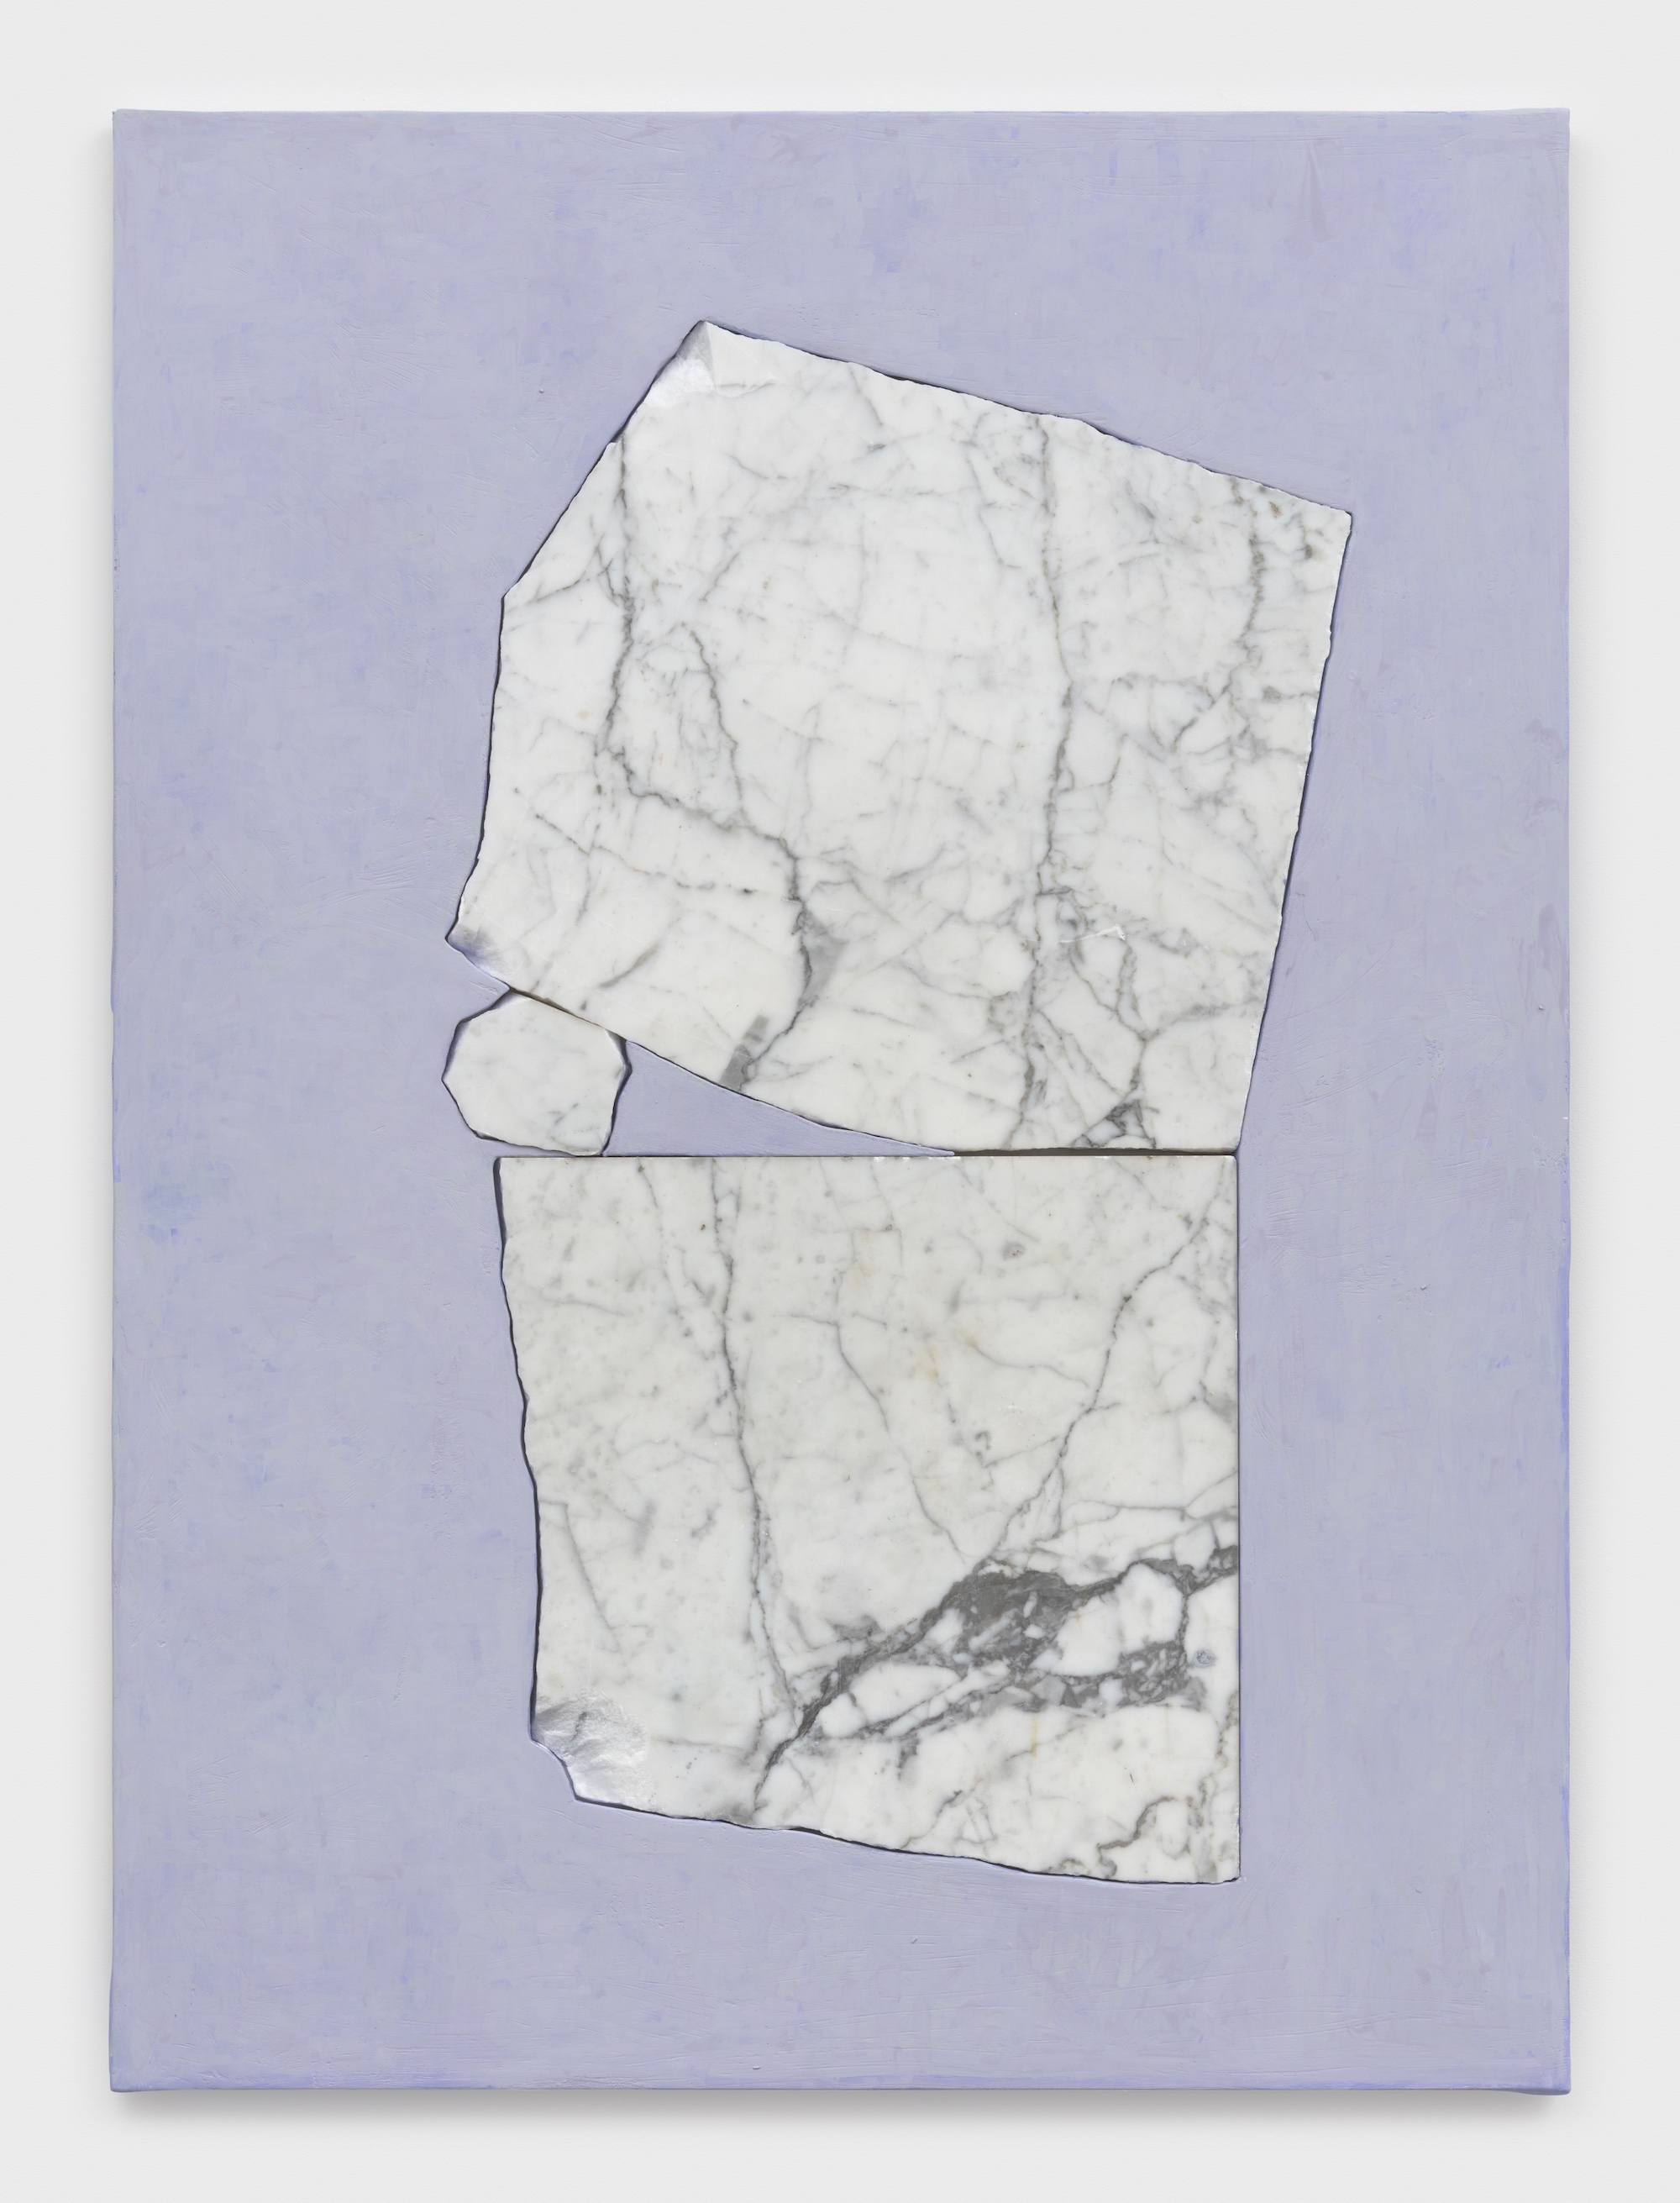 Sam Moyer Trouble Mind, 2021 marble, acrylic on plaster-coated canvas mounted to MDF 46 x 34 x 1 inches (116.8 x 86.4 x 2.5 cm) © Sam Moyer Photo: JSP Art Photography Courtesy: the artist and Sean Kelly, New York